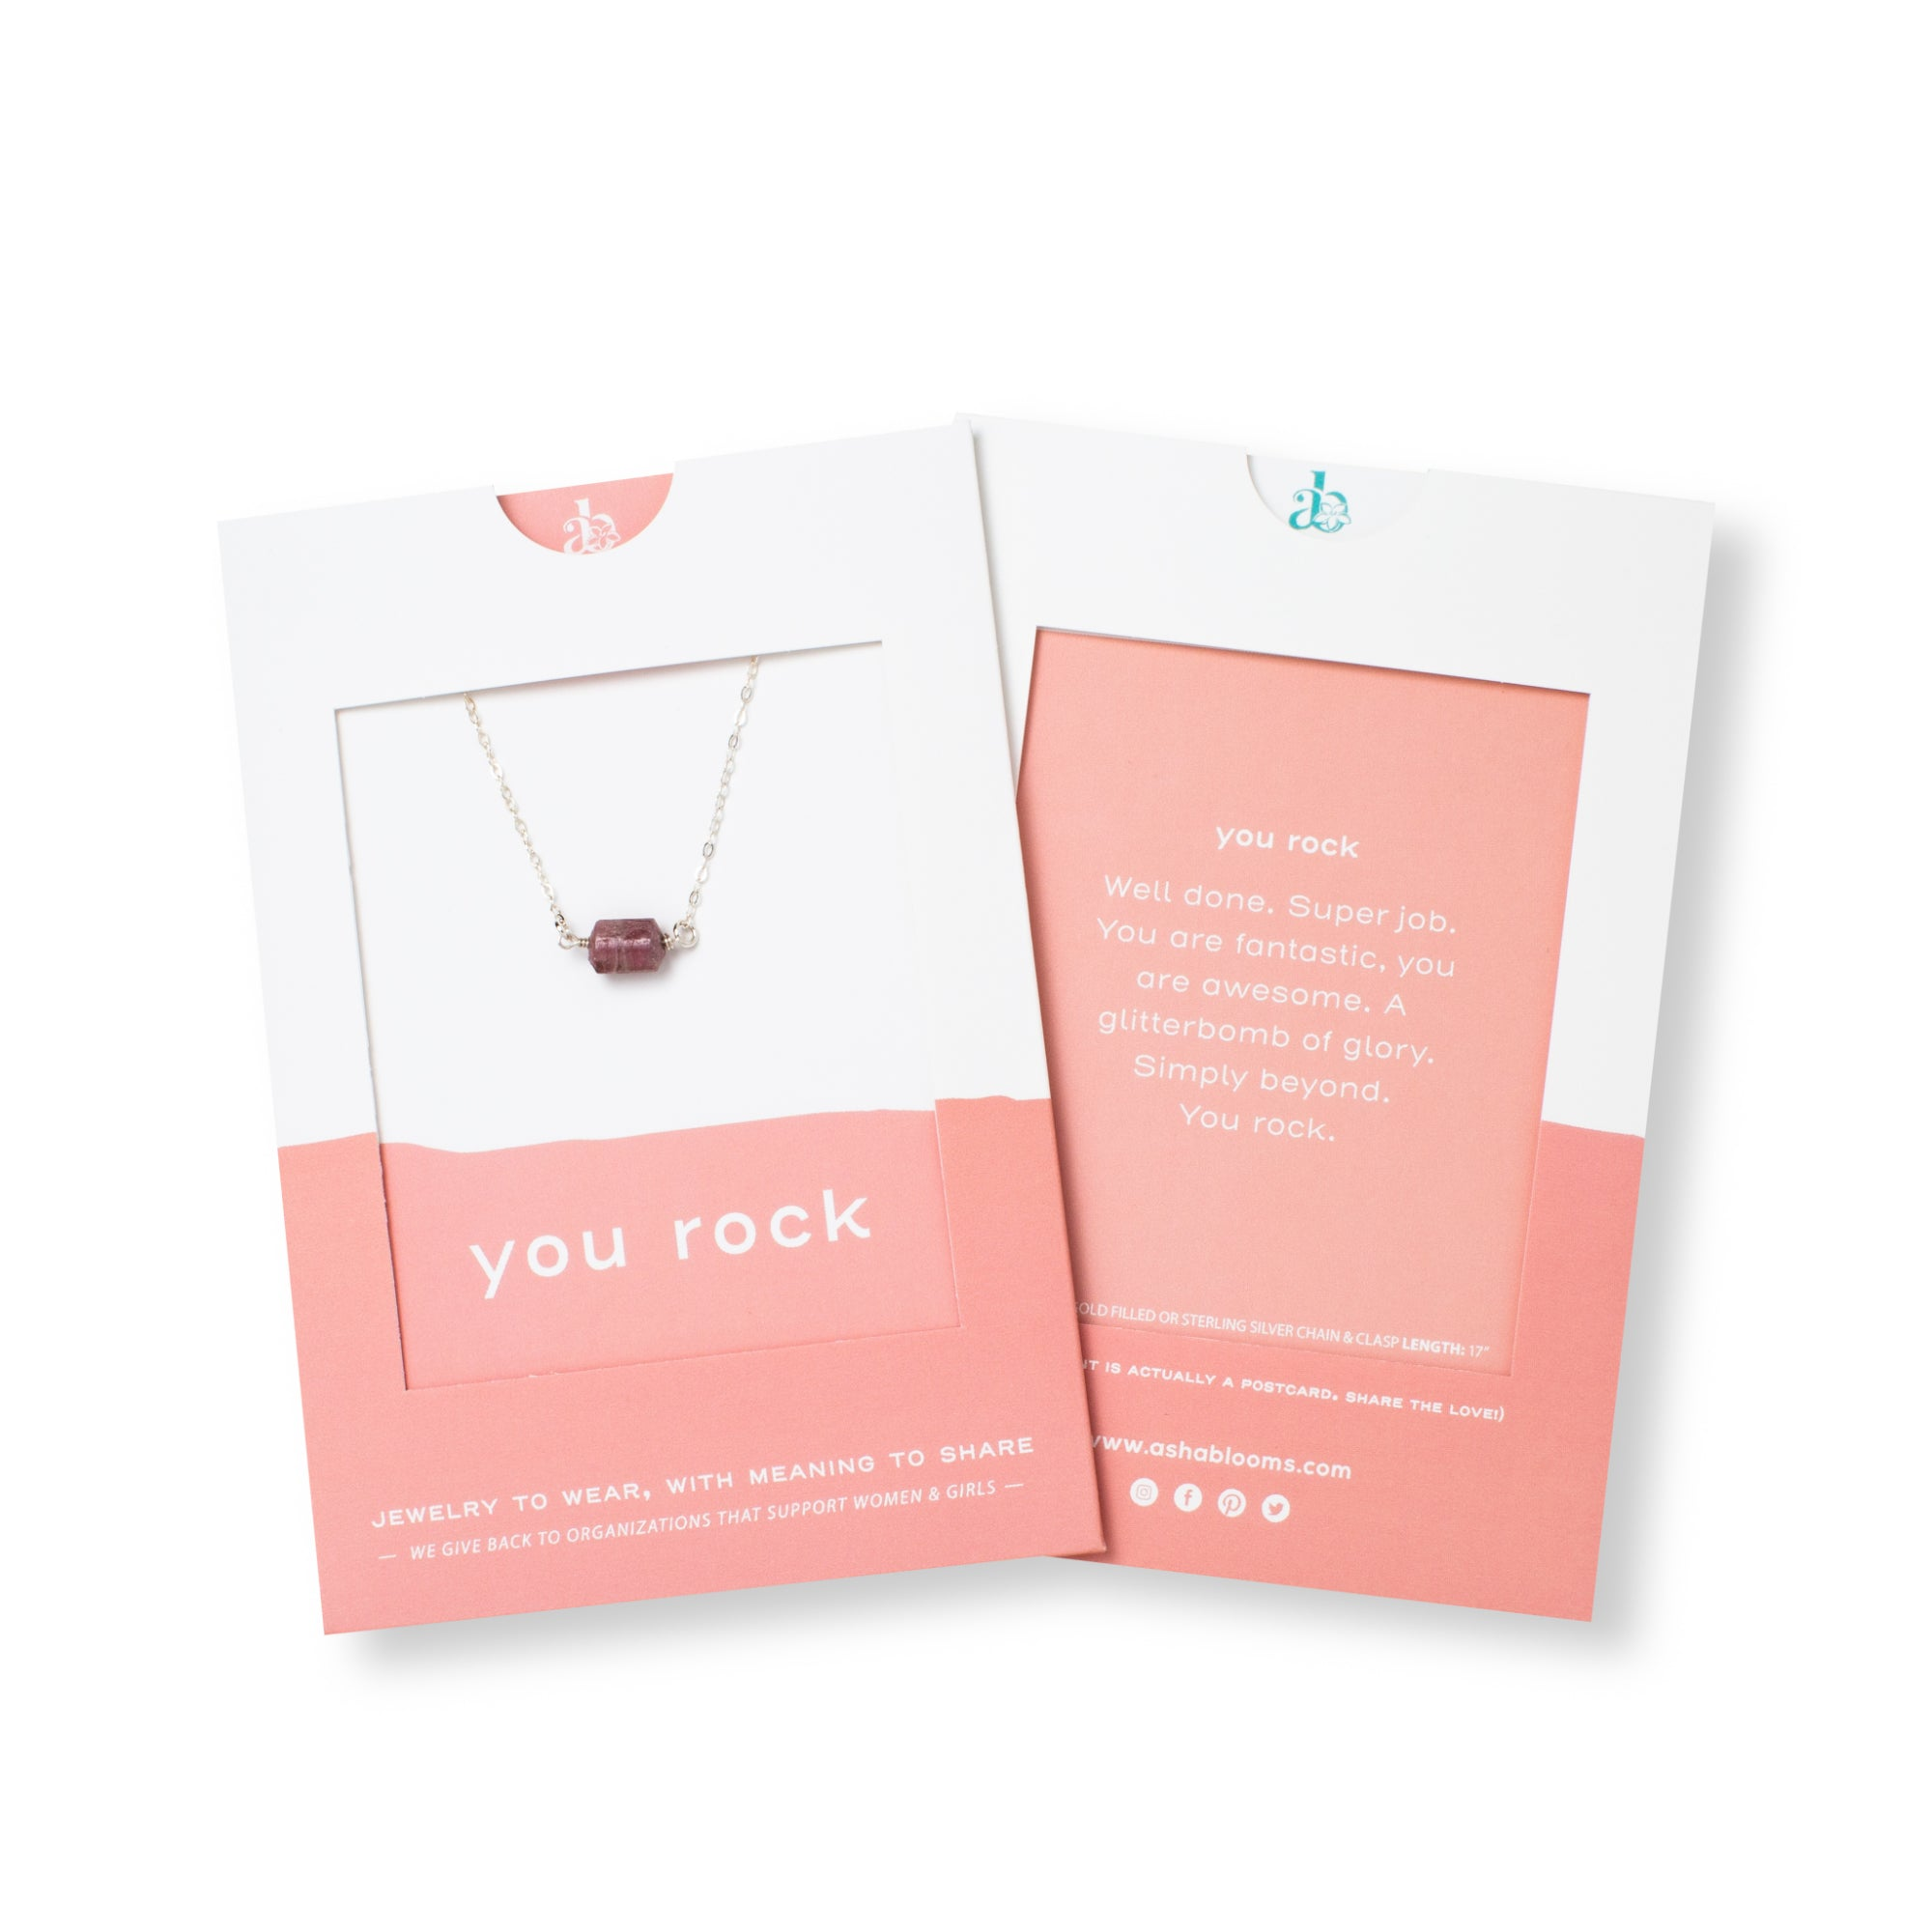 Rubellite Tourmaline and Silver Necklace 'You Rock' in Pink Gift Message Packaging Photo by Asha Blooms